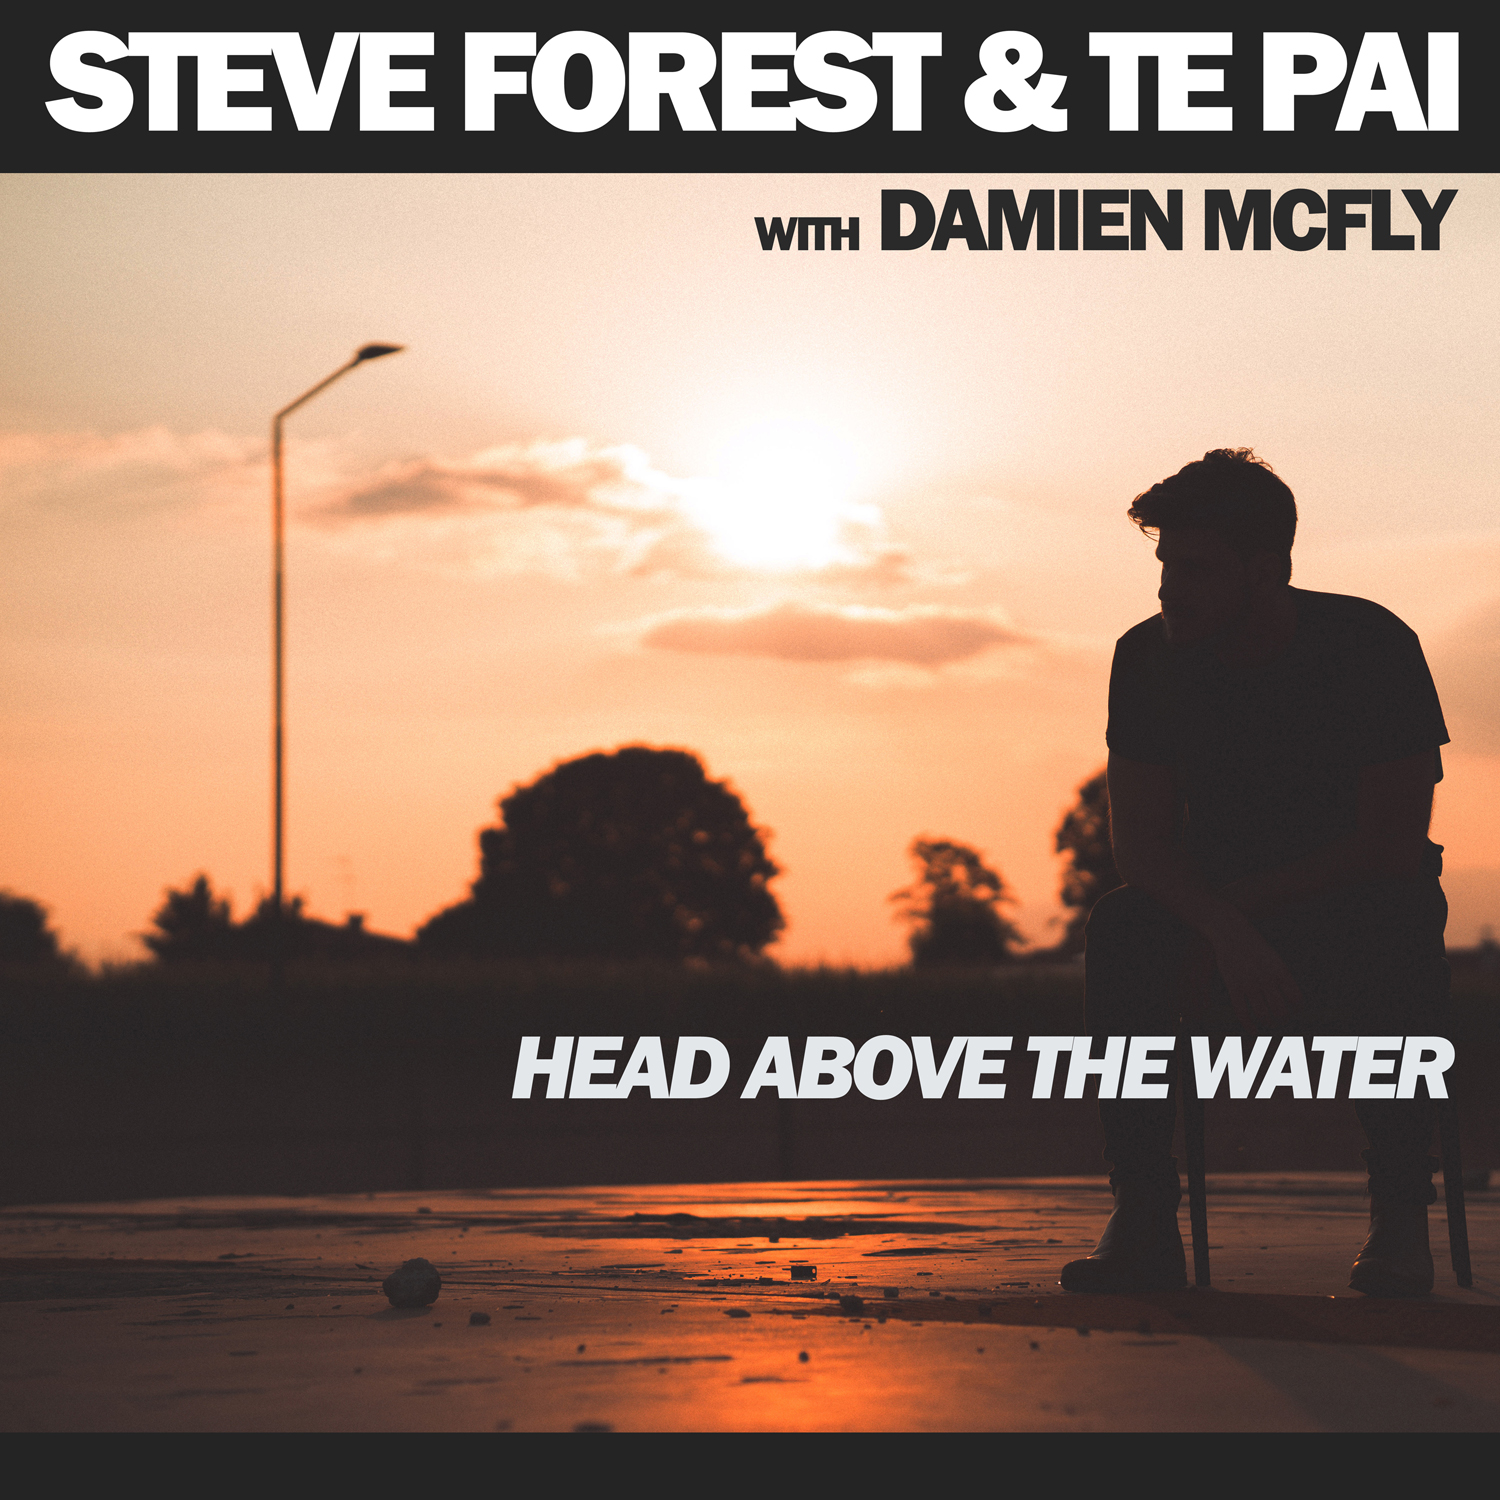 STEVE FOREST & TE PAI with DAMIEN MCFLY - Head above the water